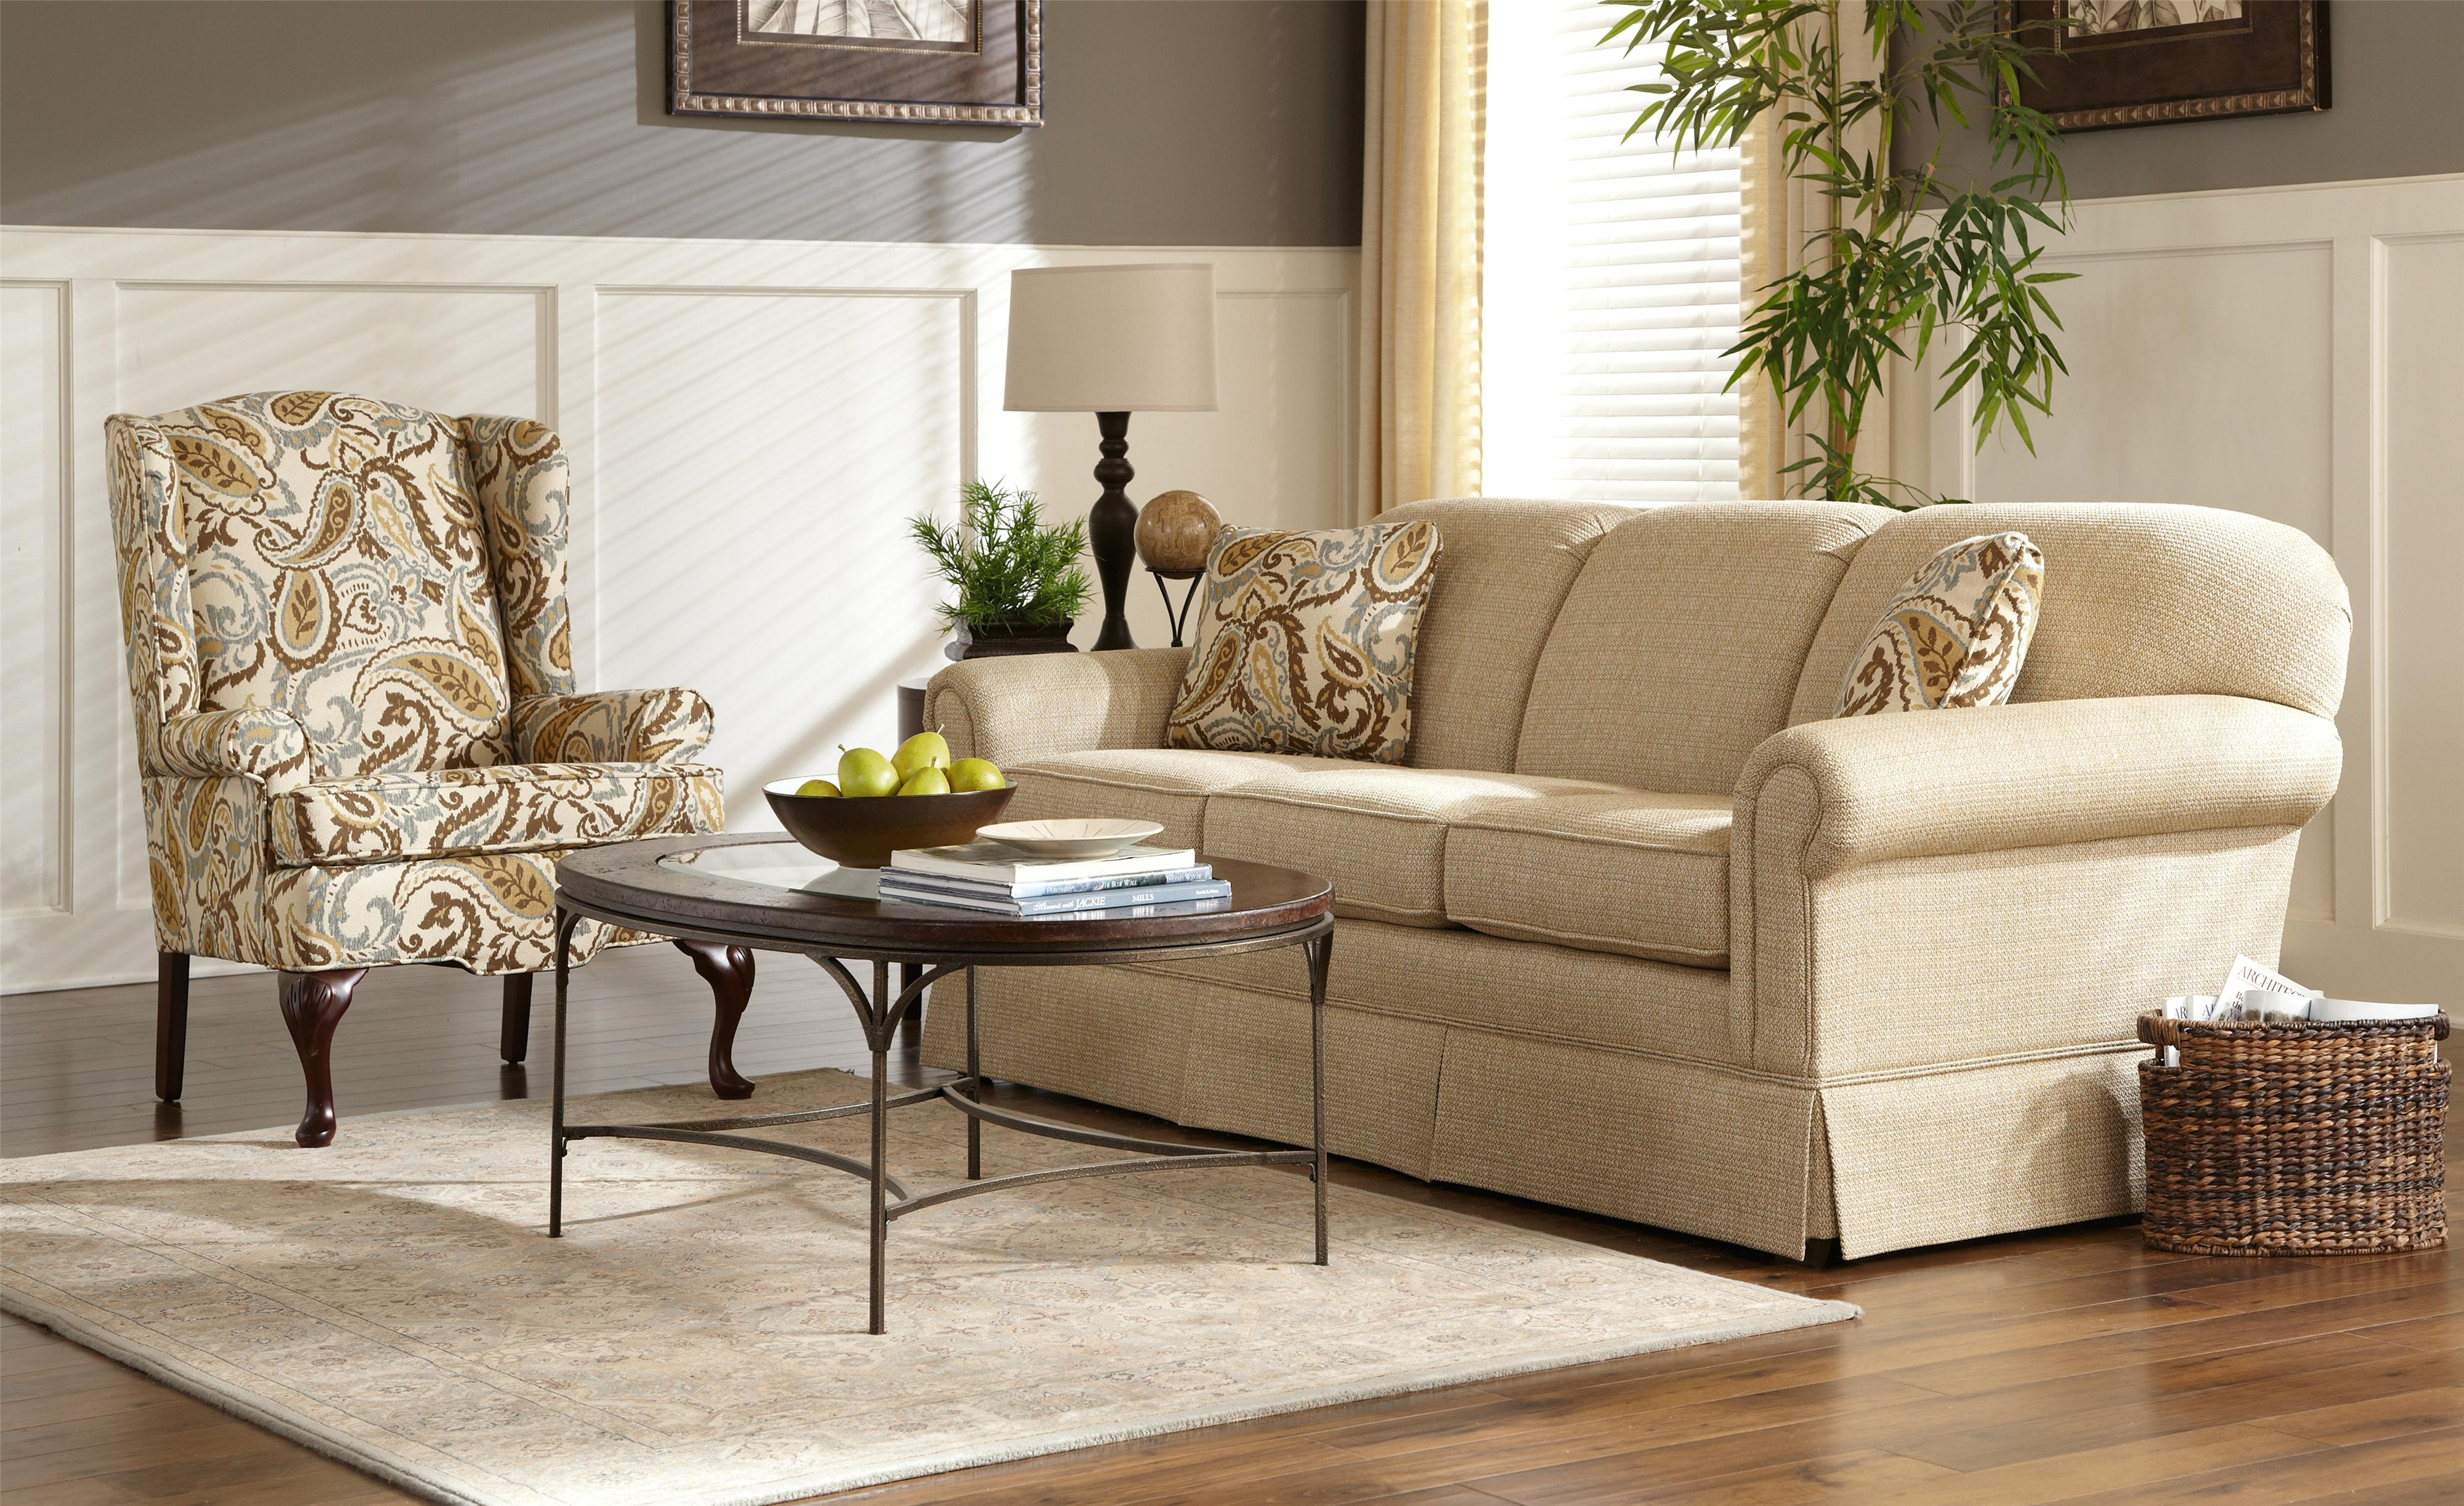 4200 Stationary Living Room Group by Craftmaster at VanDrie Home Furnishings